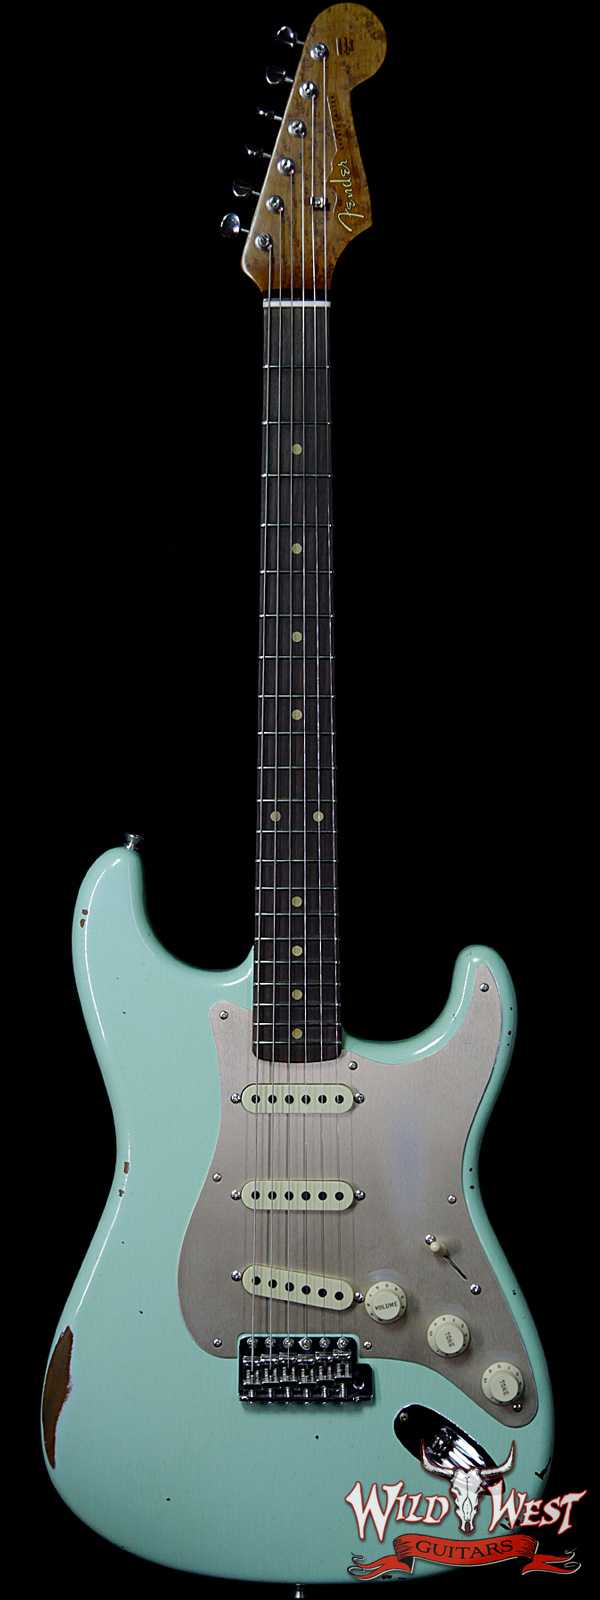 Fender Custom Shop 1960 Roasted Stratocaster Relic Birdseye Maple Neck Rosewood Slab Board Surf Green